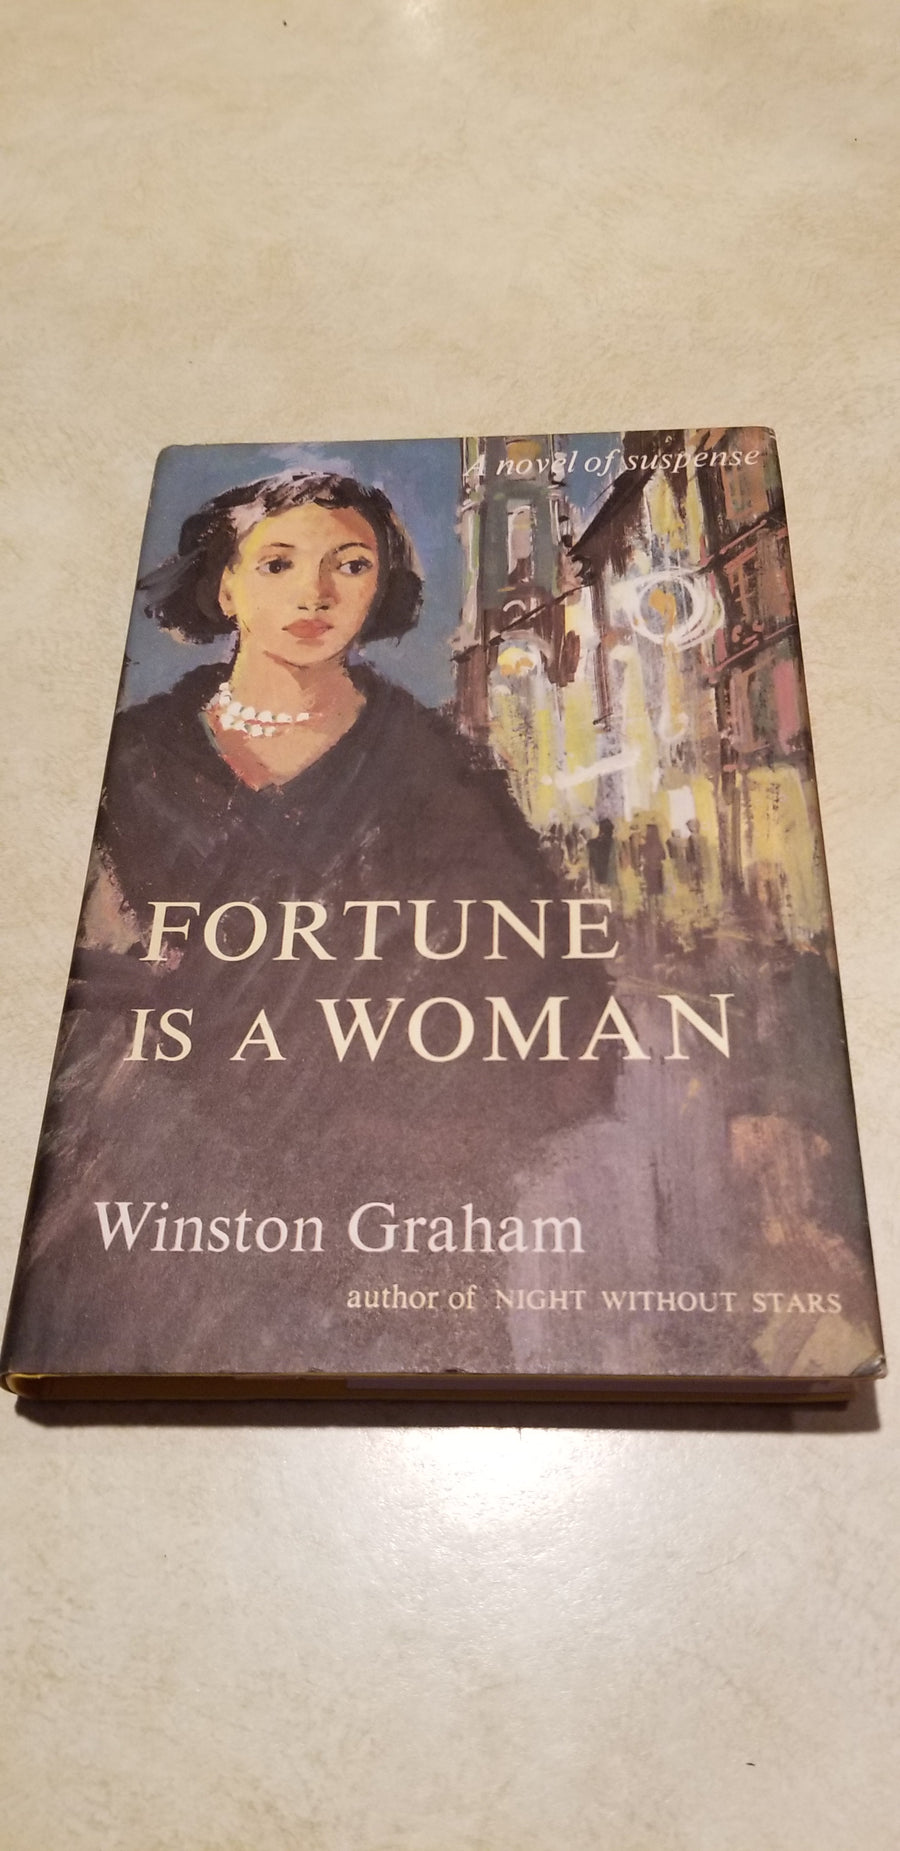 Fortune is a woman, Graham, 1953